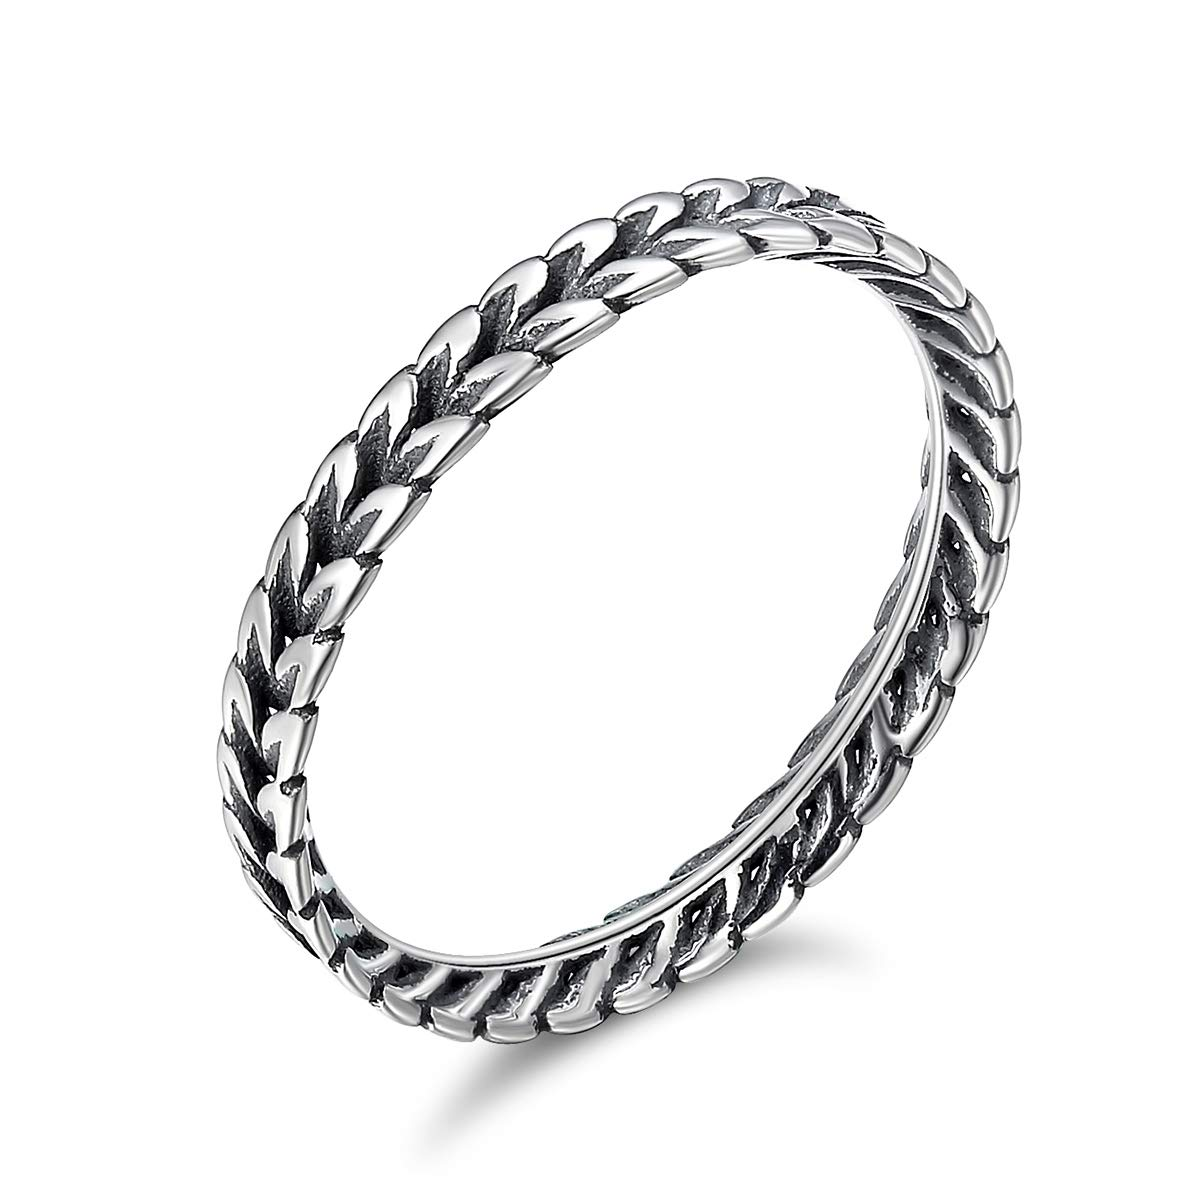 WOSTU Thin Band Eternity Rings 925 Sterling Silver Bali Rings Wedding Engagement Rings for Women